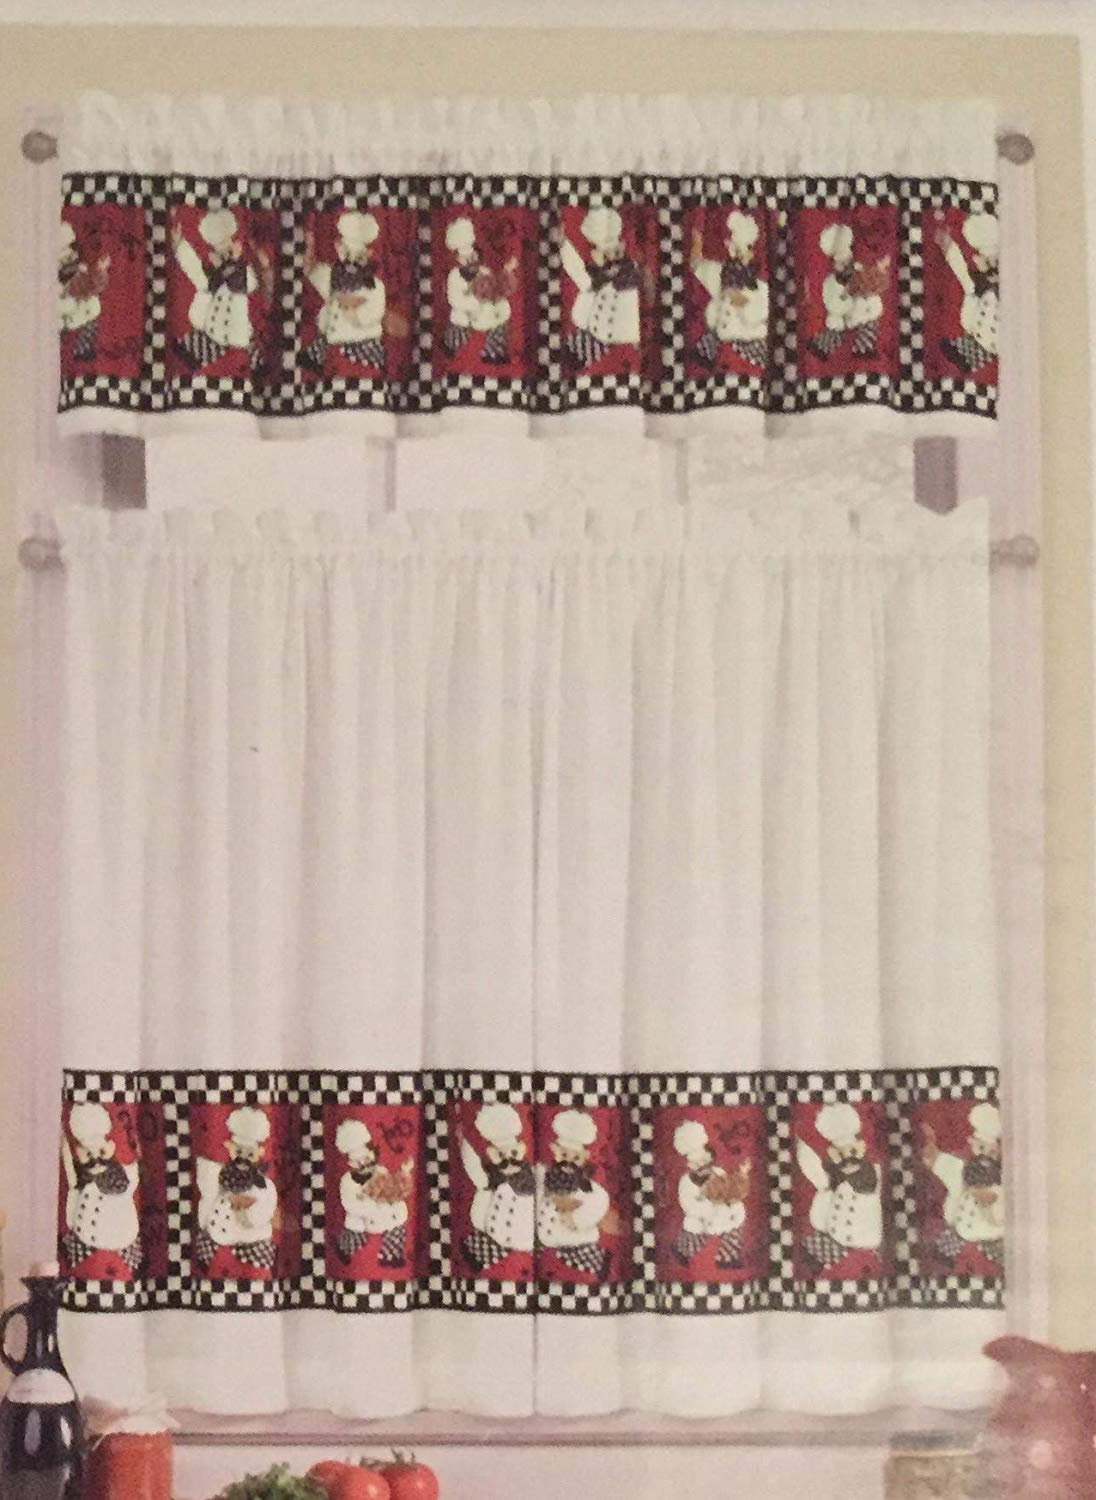 Interiorsdesign Chef Kitchen Window Tier And Valance Set Red, Black, White Pertaining To Well Known Embroidered Chef Black 5 Piece Kitchen Curtain Sets (View 5 of 20)